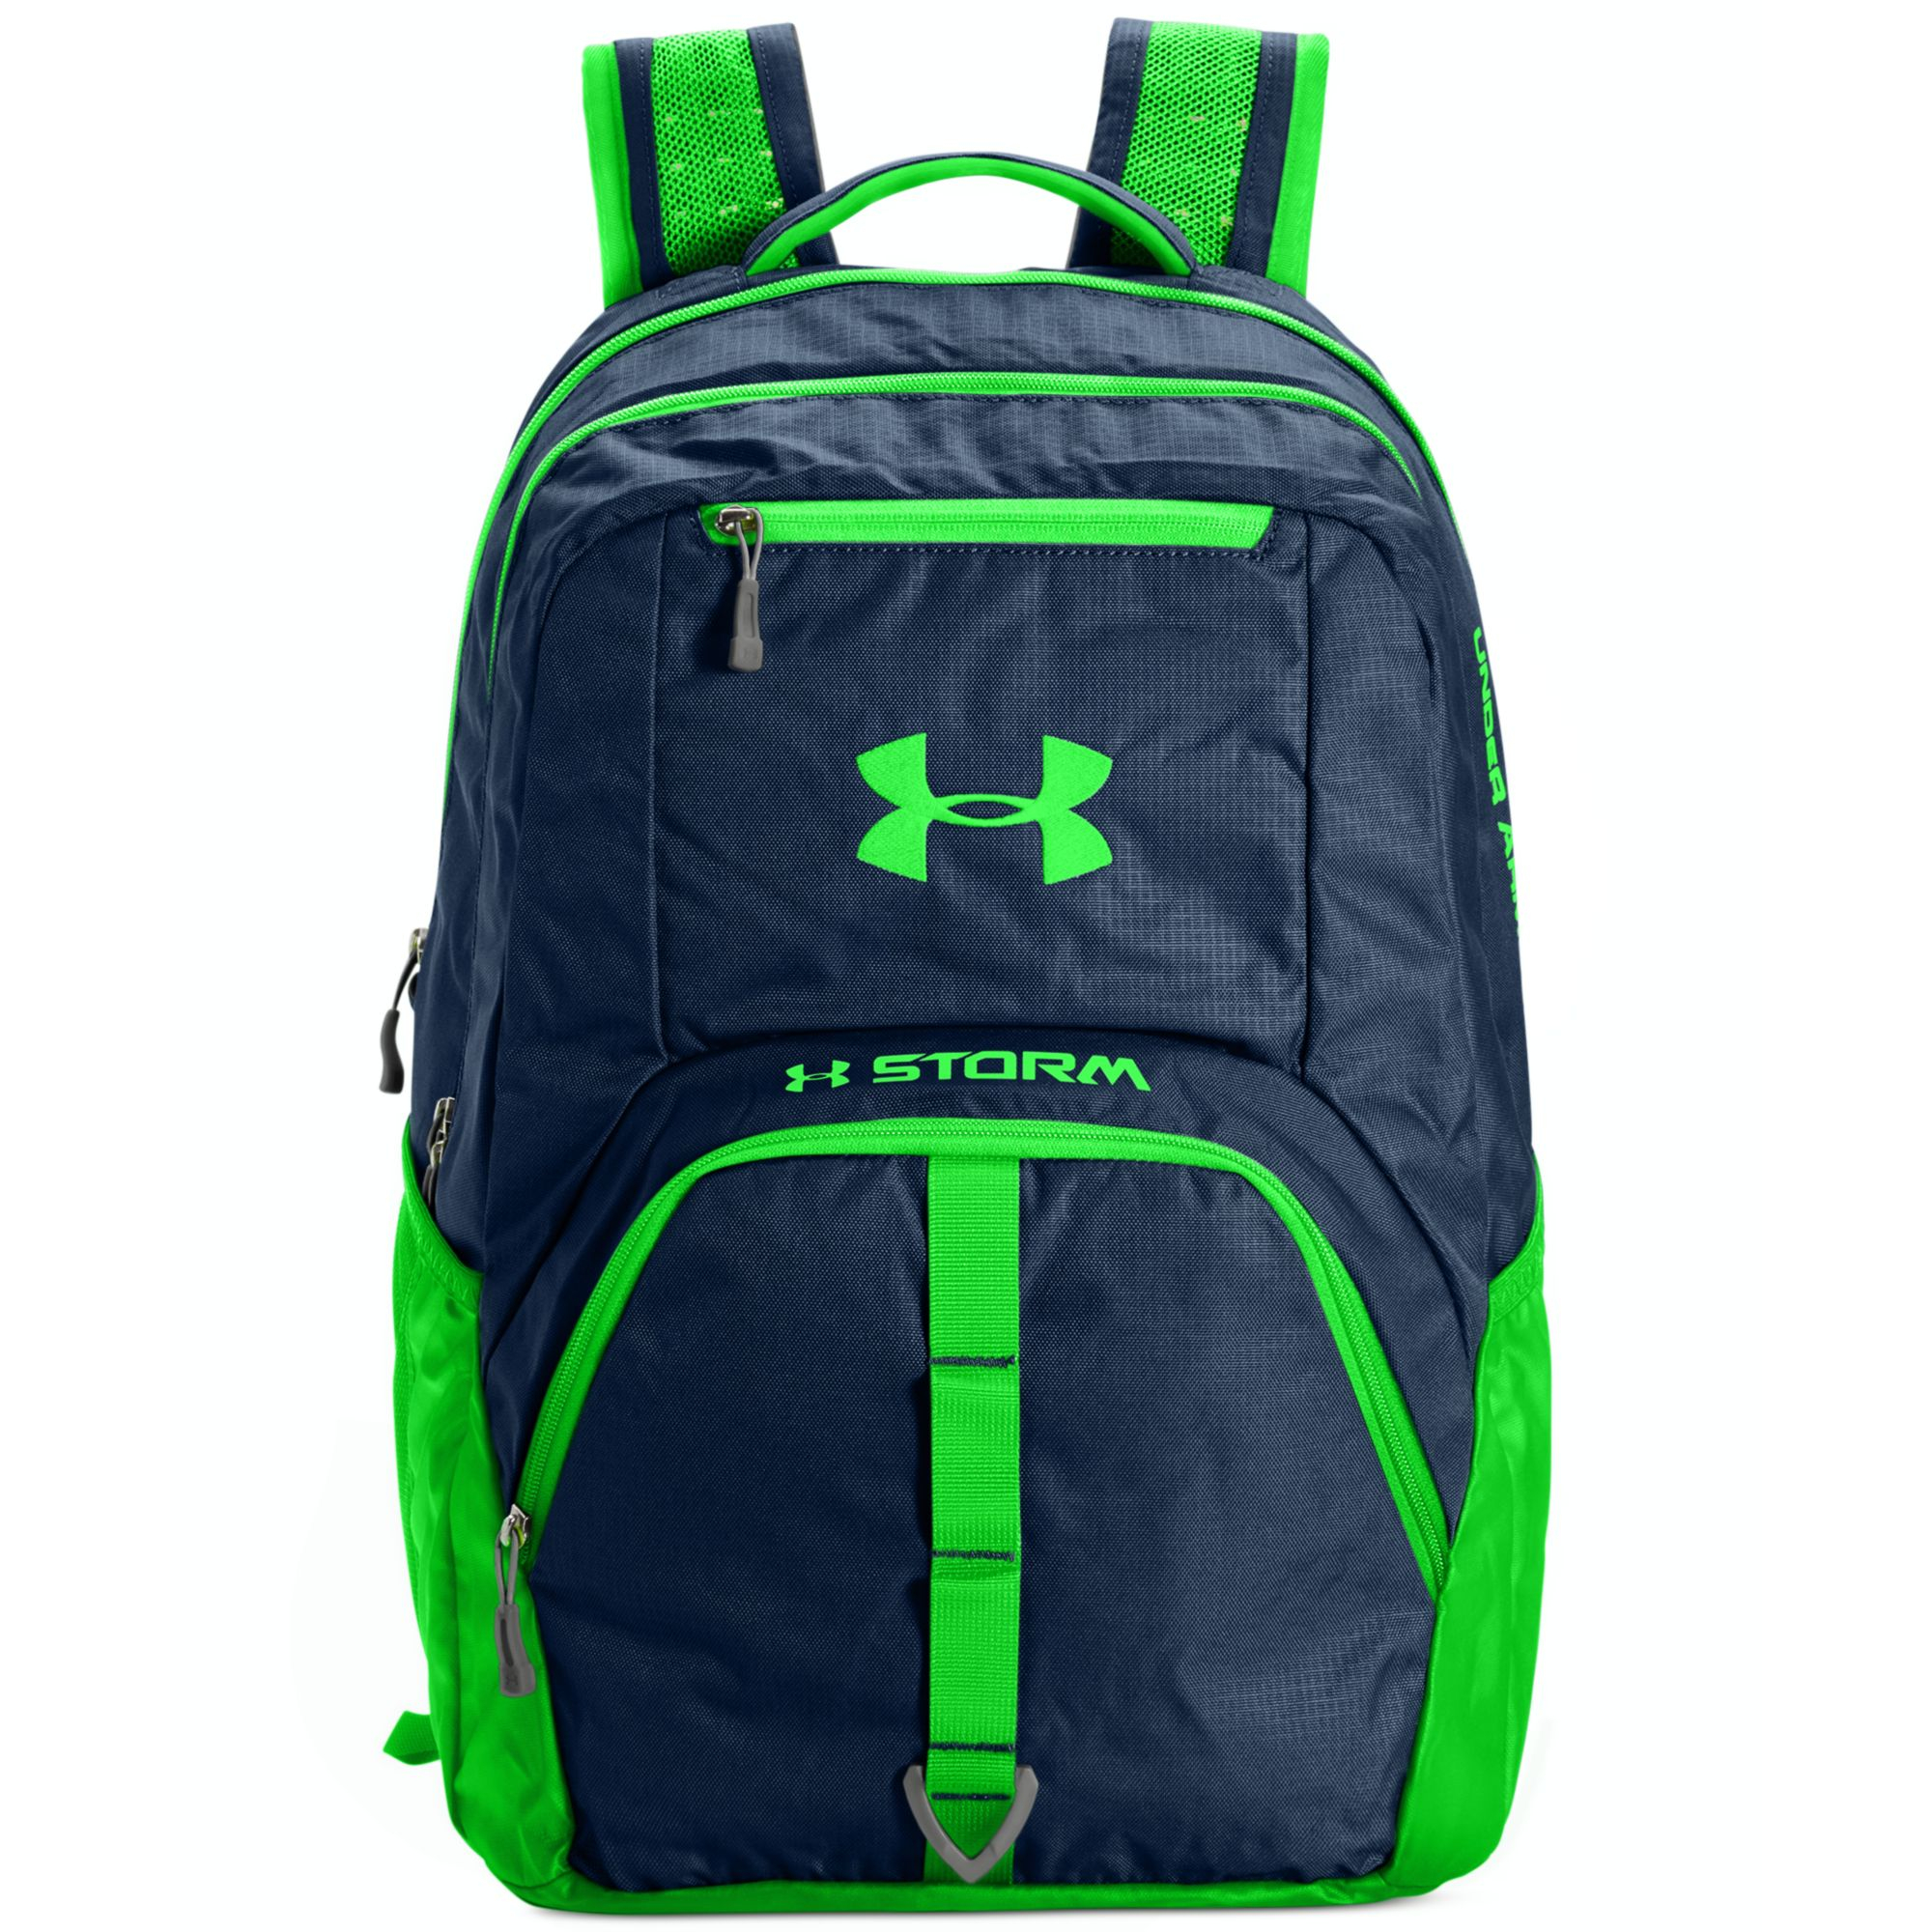 9984fbd58a3d Lyst - Under Armour Exeter Backpack in Green for Men